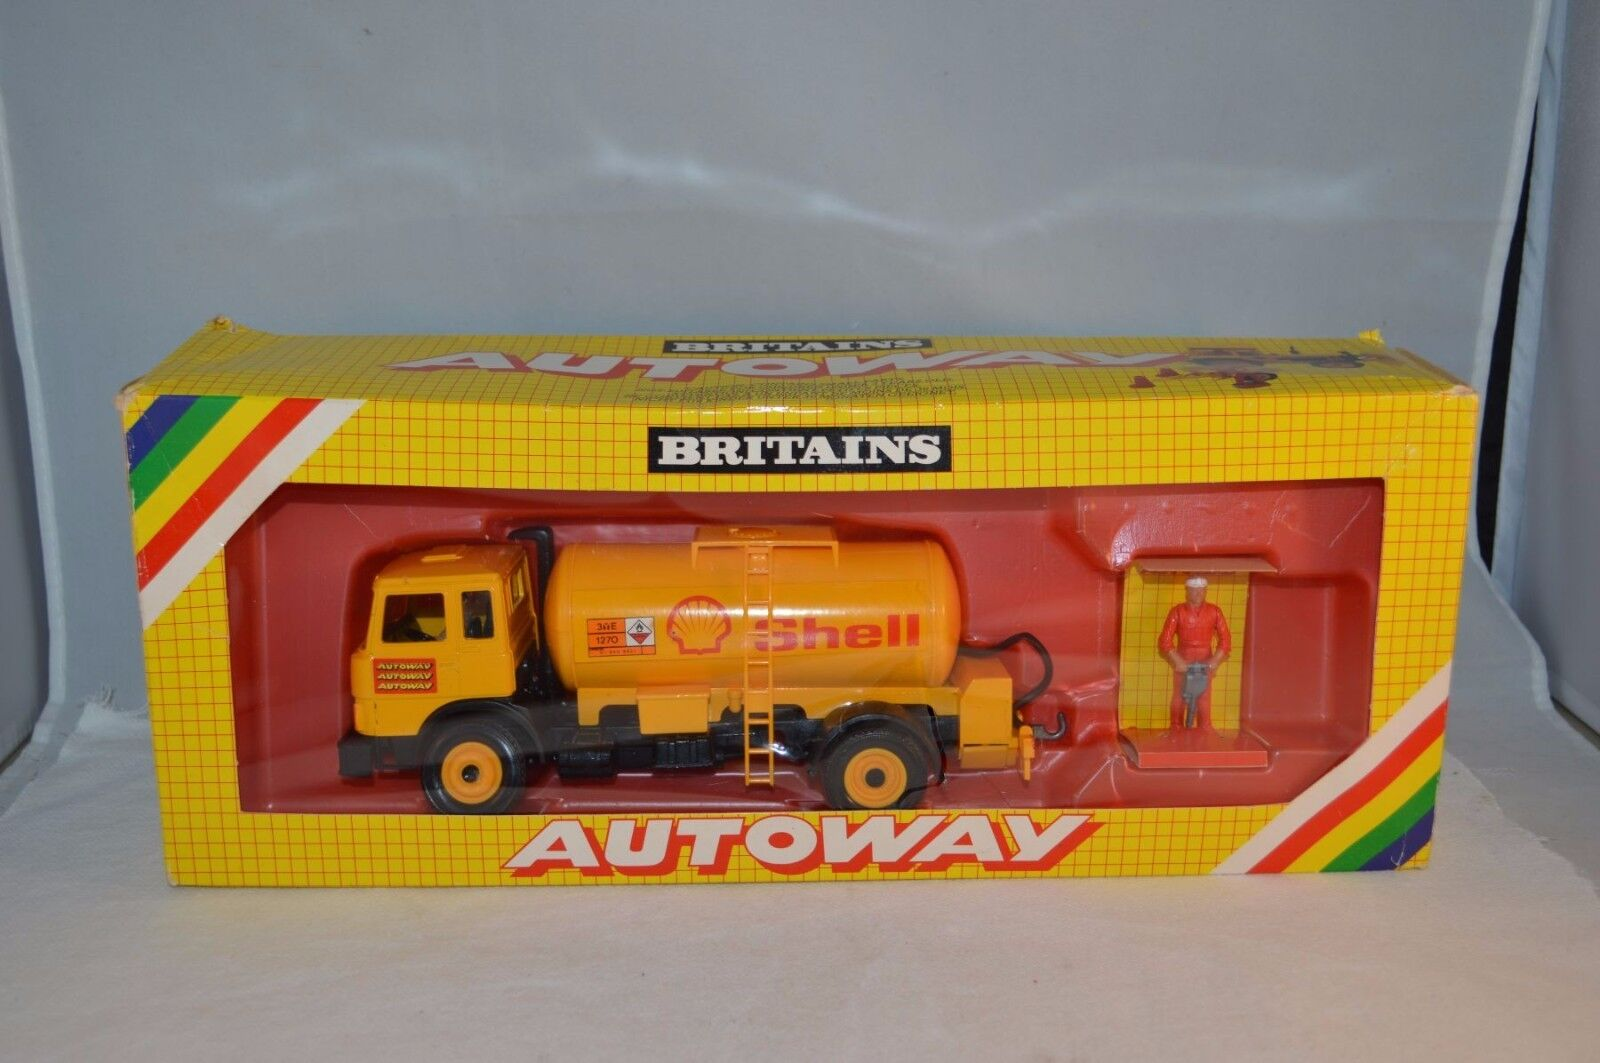 Britains 9817 Autoway Shell Fiat Iveco Petrol tanker 99.9% mint in box